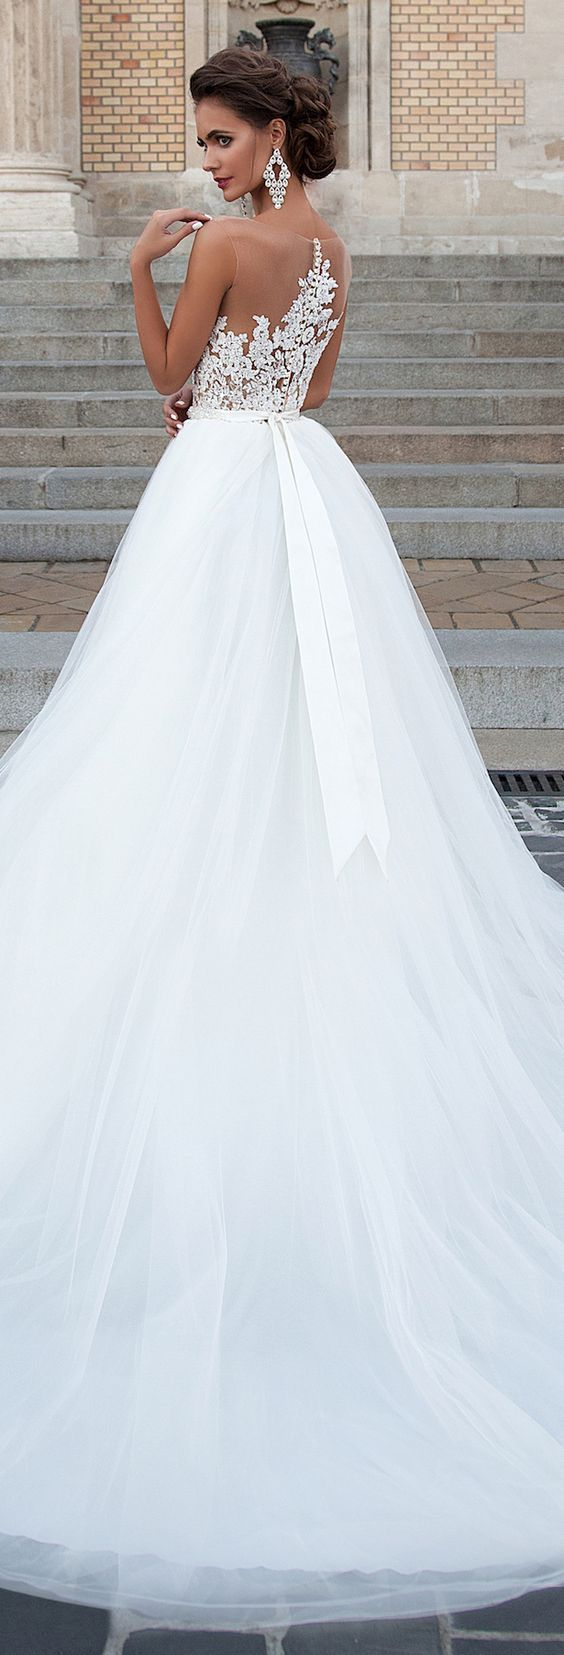 1446 best Brautkleider / Wedding Dresses images on Pinterest ...